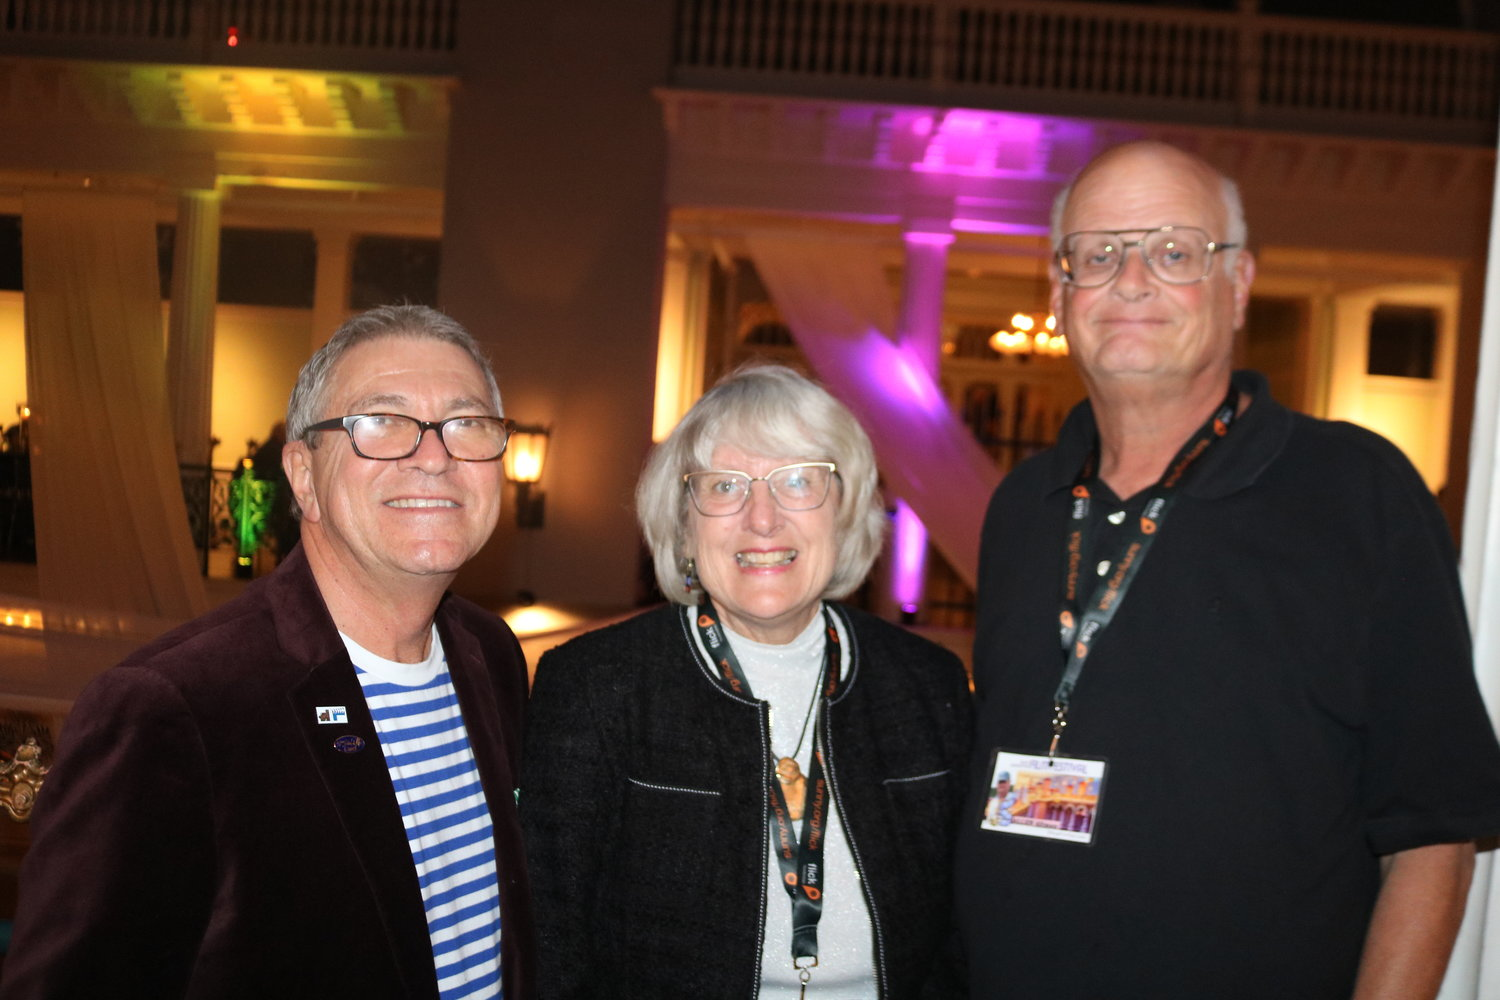 Gregory von Hausch, the CEO of the Saint Augustine Film Festival and the Fort Lauderdale International Film Festival, stands with Cathie and Allen Altman of St. Augustine, longtime patrons and sponsors of the St. Augustine Film Festival